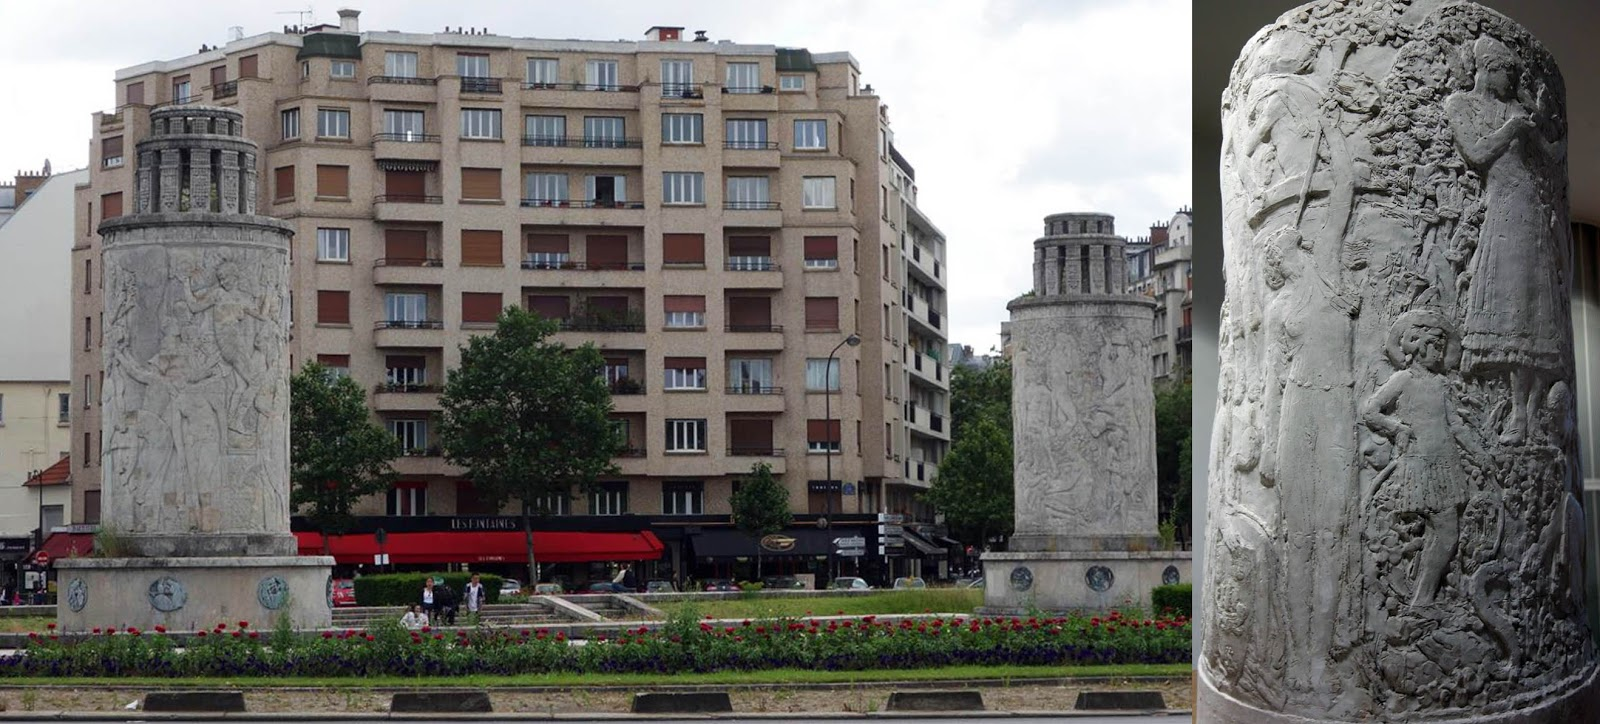 Annie and Rich s Travel Adventures  Paris 2016   16th Arr    Art     We started our tour at the square adjacent to the Porte de Saint Cloud metro  station  where we passed by two 10 metre high fountains by Polish French